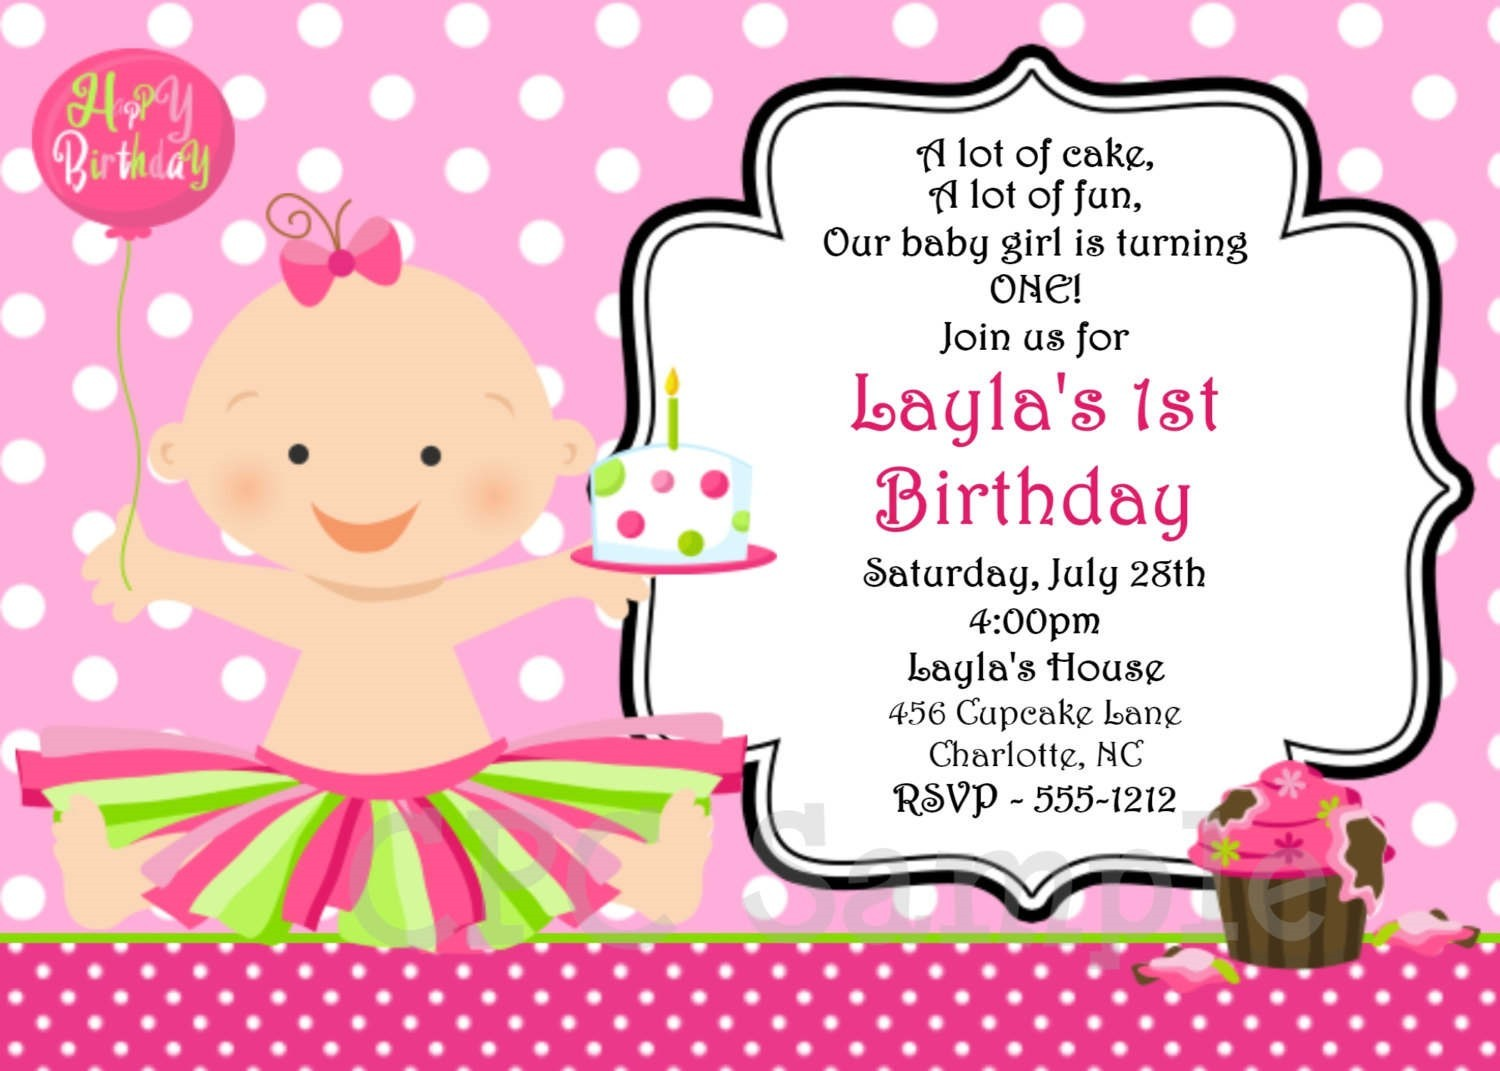 birthday invitation card template with photo ; invitation-card-maker-fresh-popular-birthday-invitation-card-maker-2030